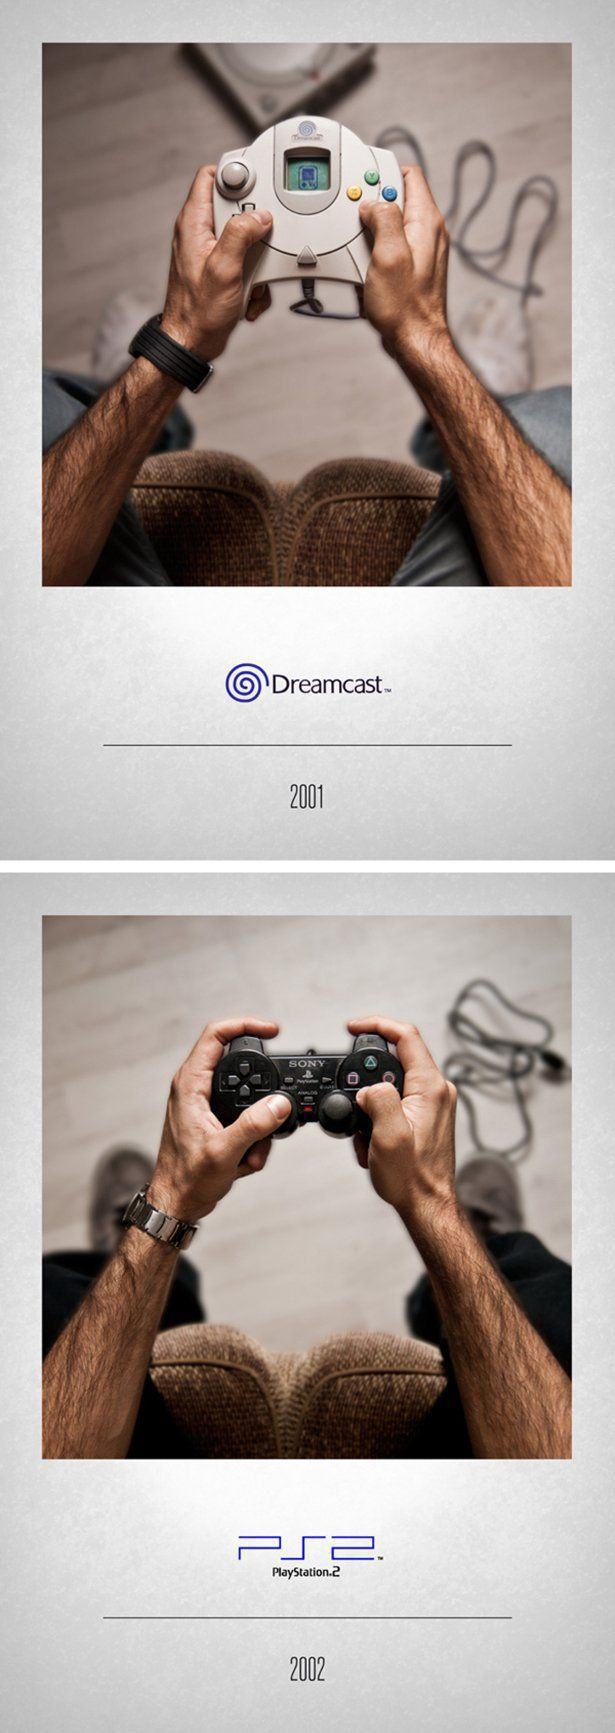 how_video_game_controllers_have_changed_over_the_years_640_high_12